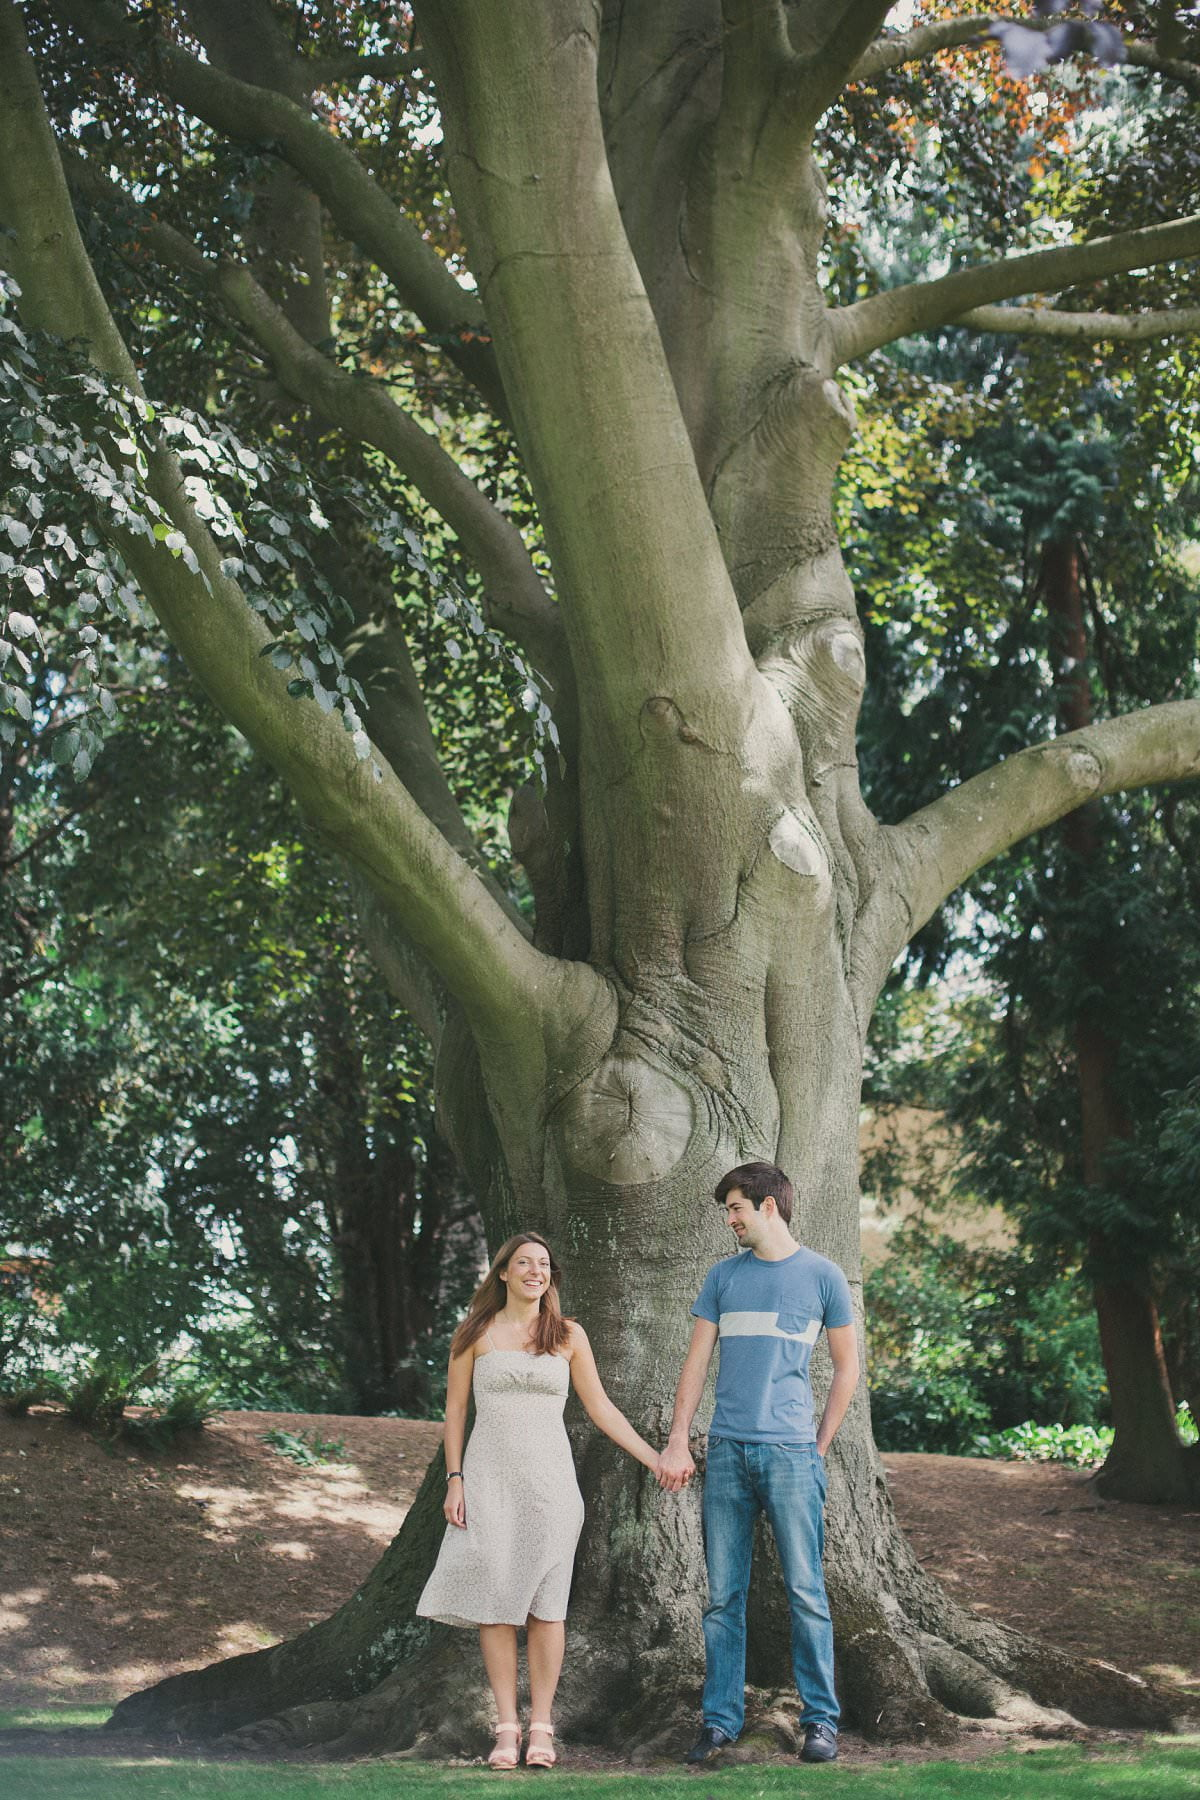 artistic-quirky-pre-wedding-engagement-photography-oxford-27